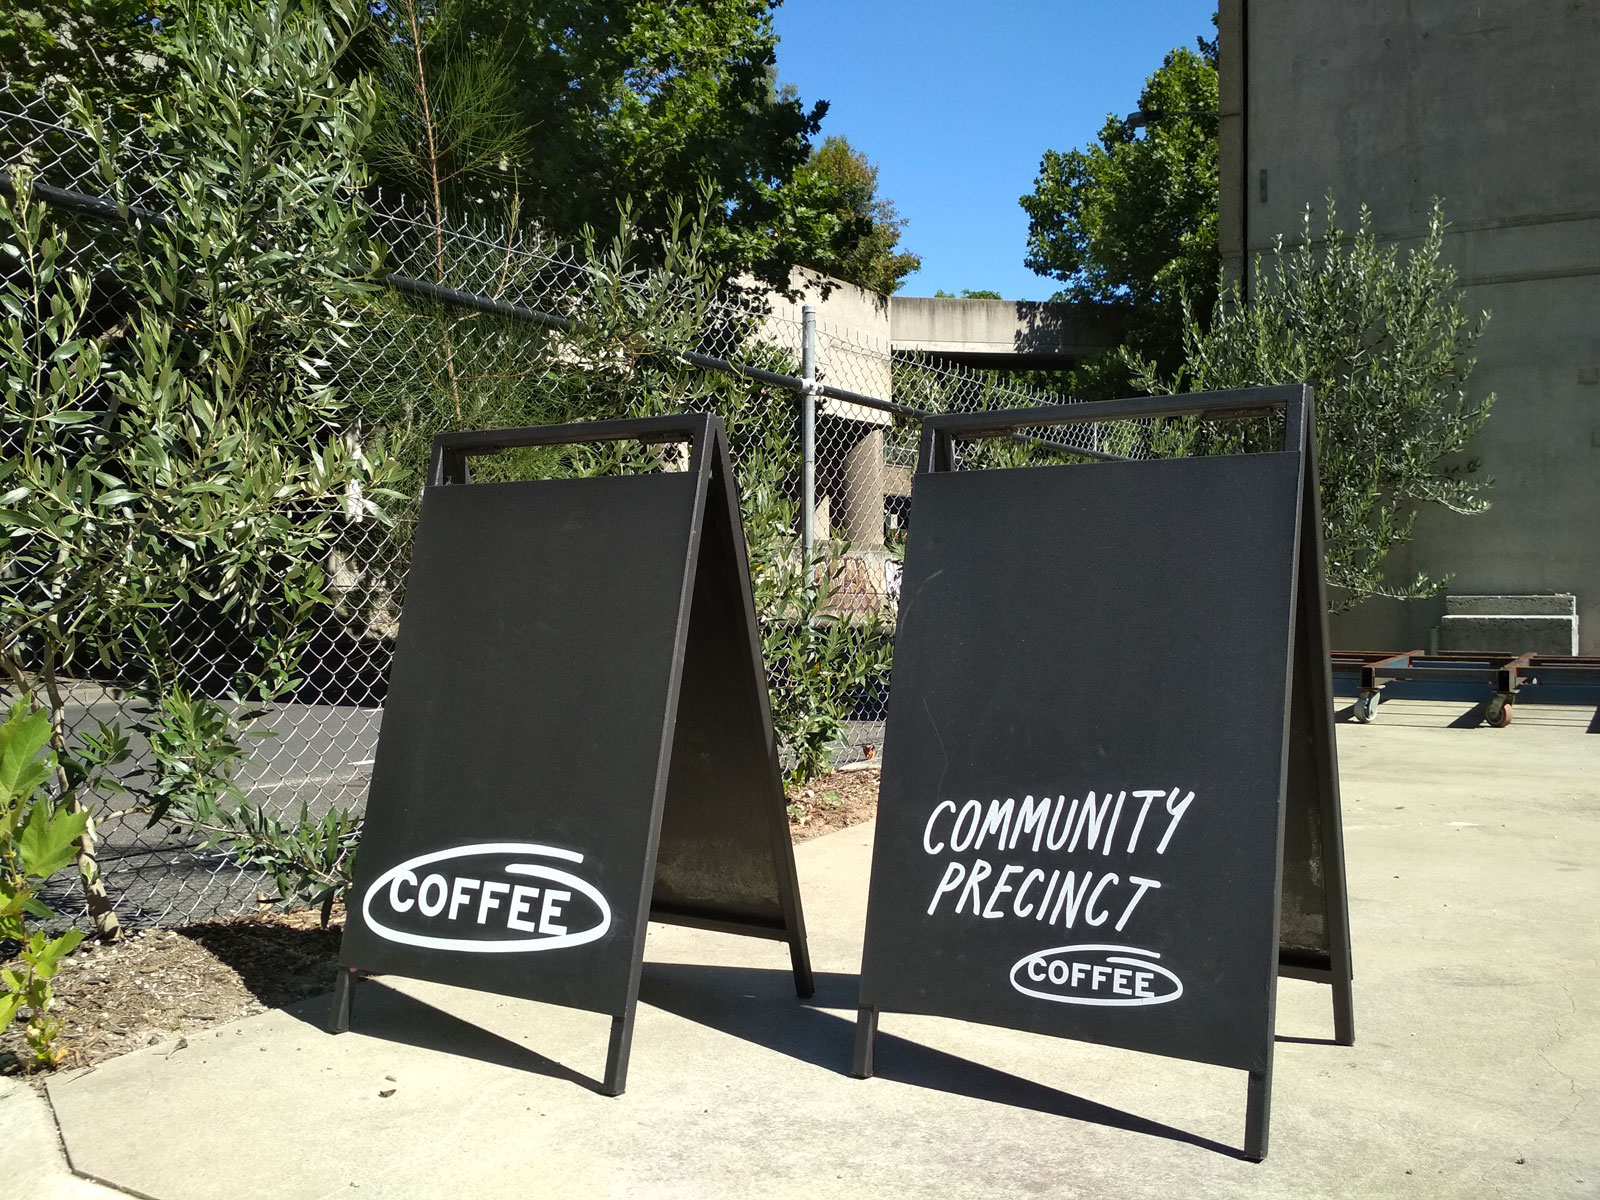 These Are The Projects We Do Together Community Precinct Coffee